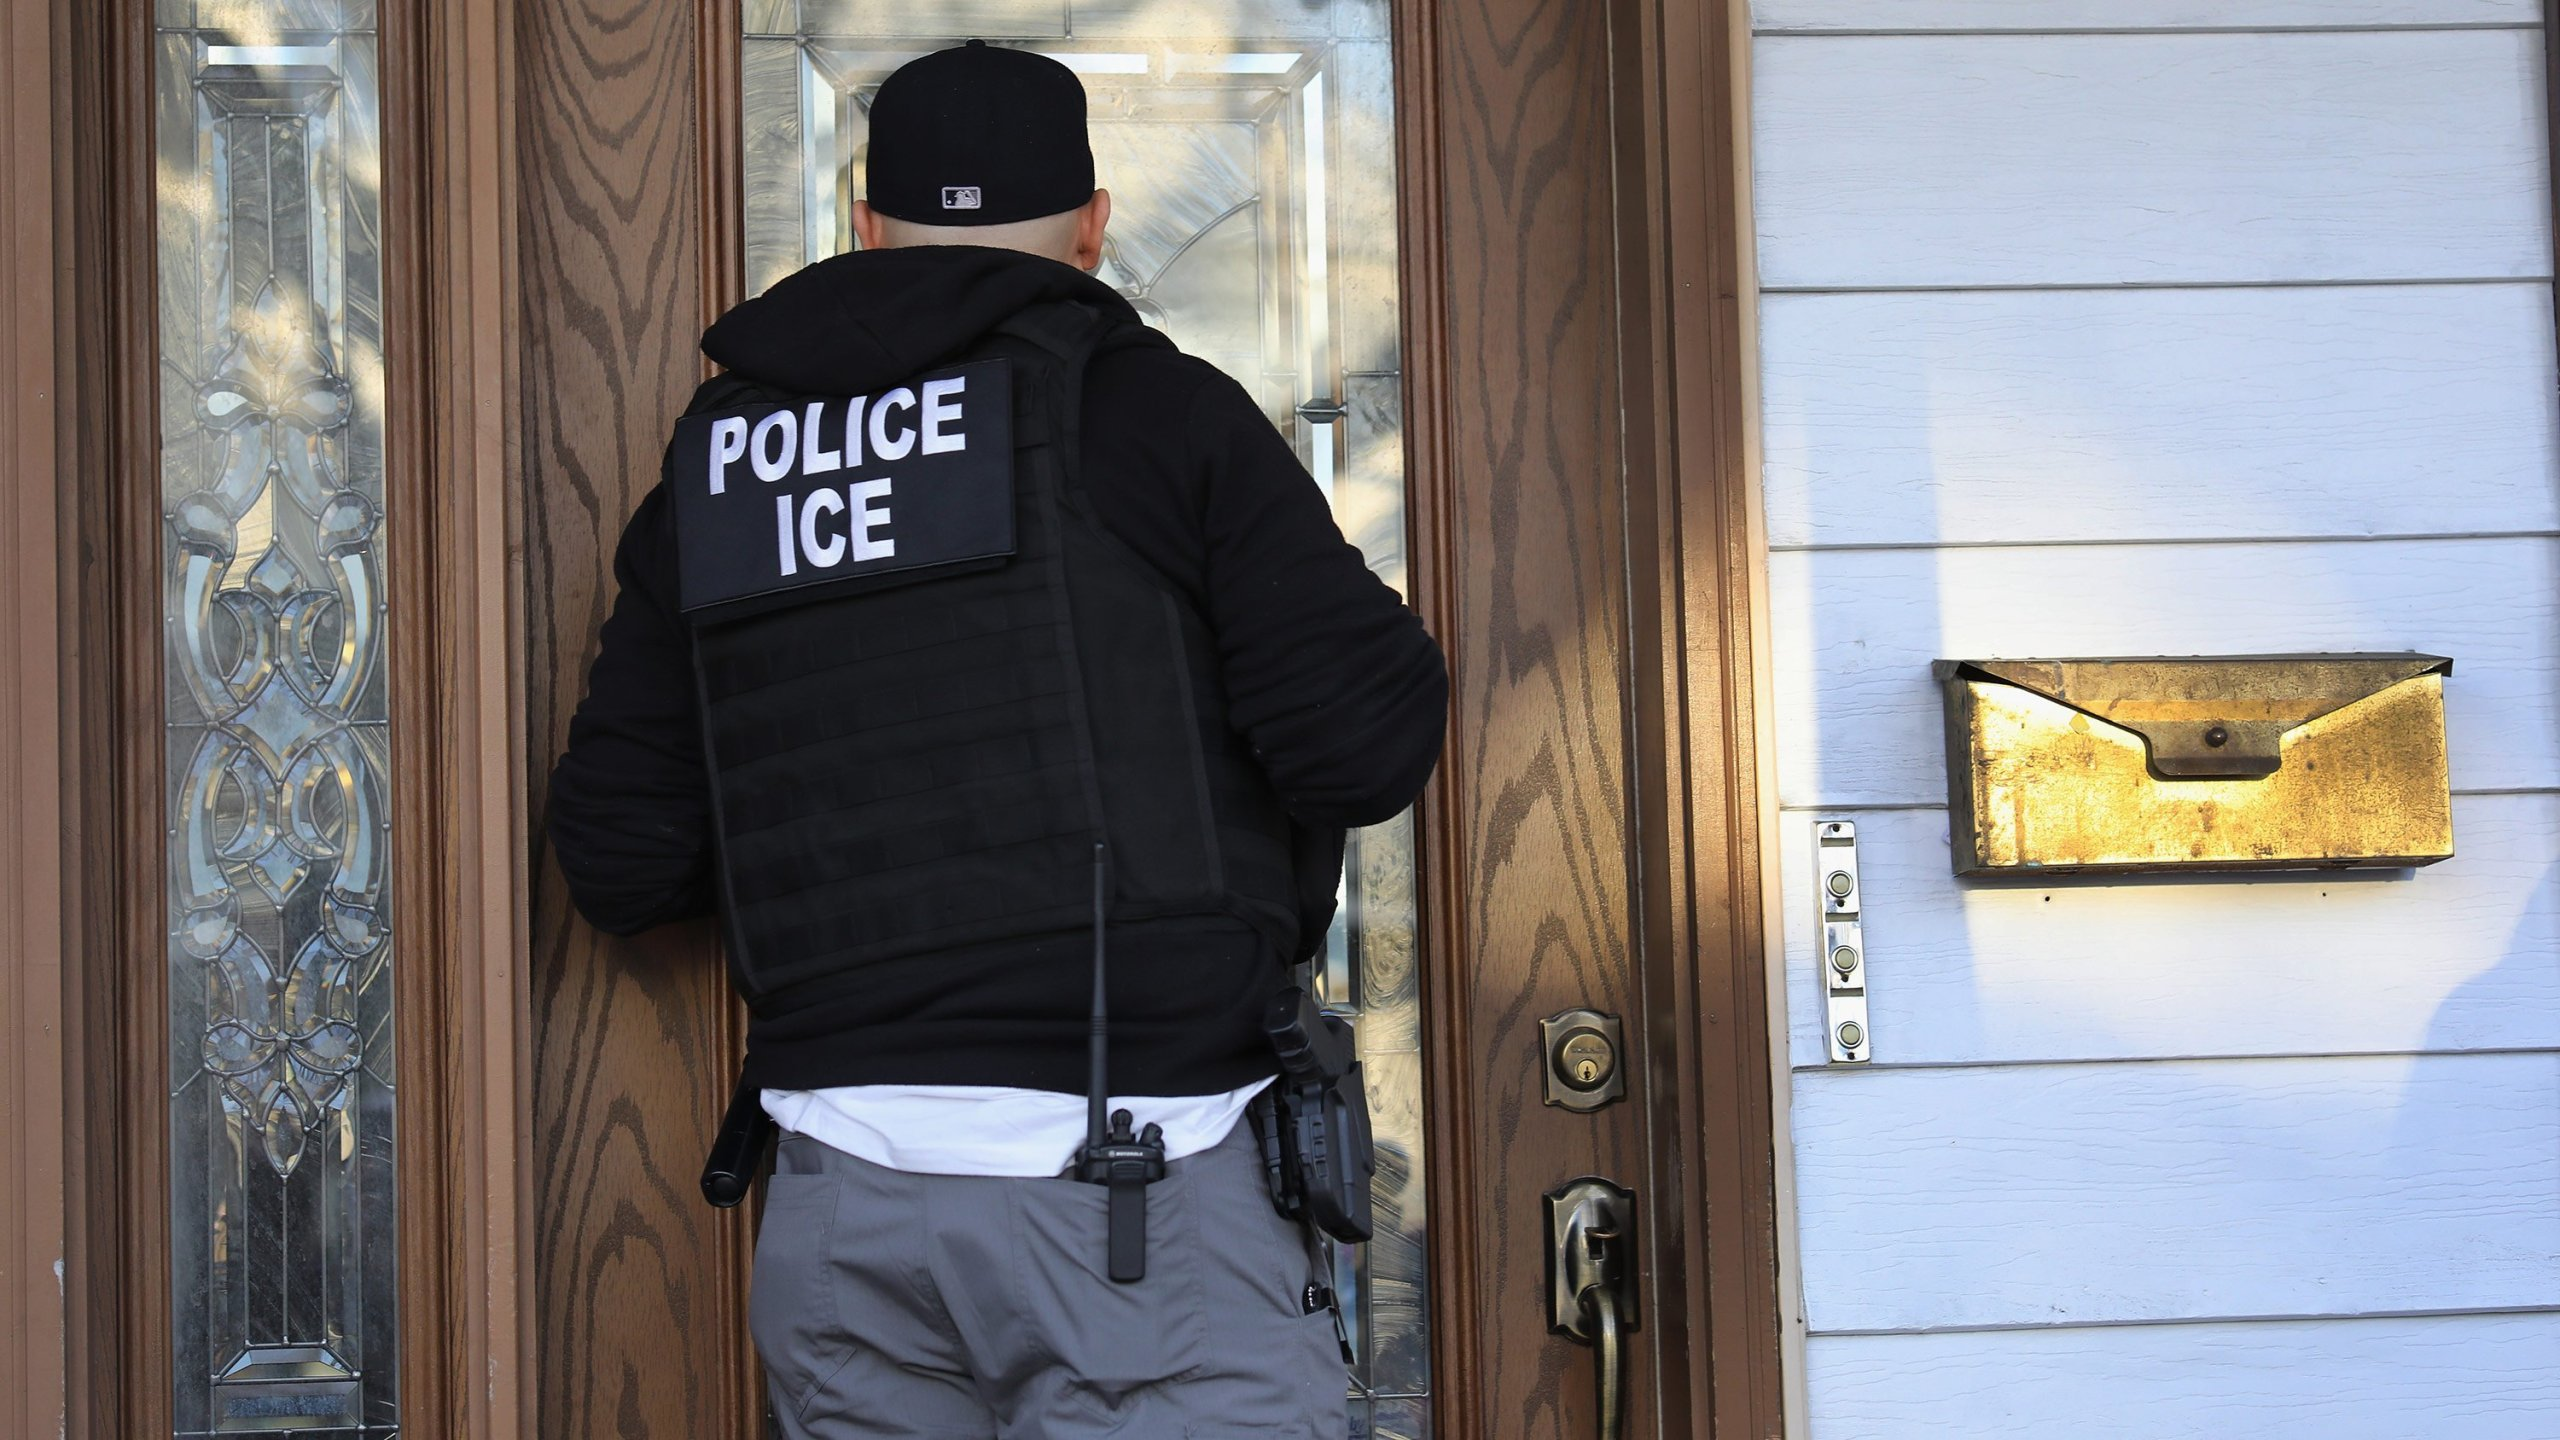 An ICE officer is seen in an undated photo. (Credit: John Moore/Getty Images via CNN)